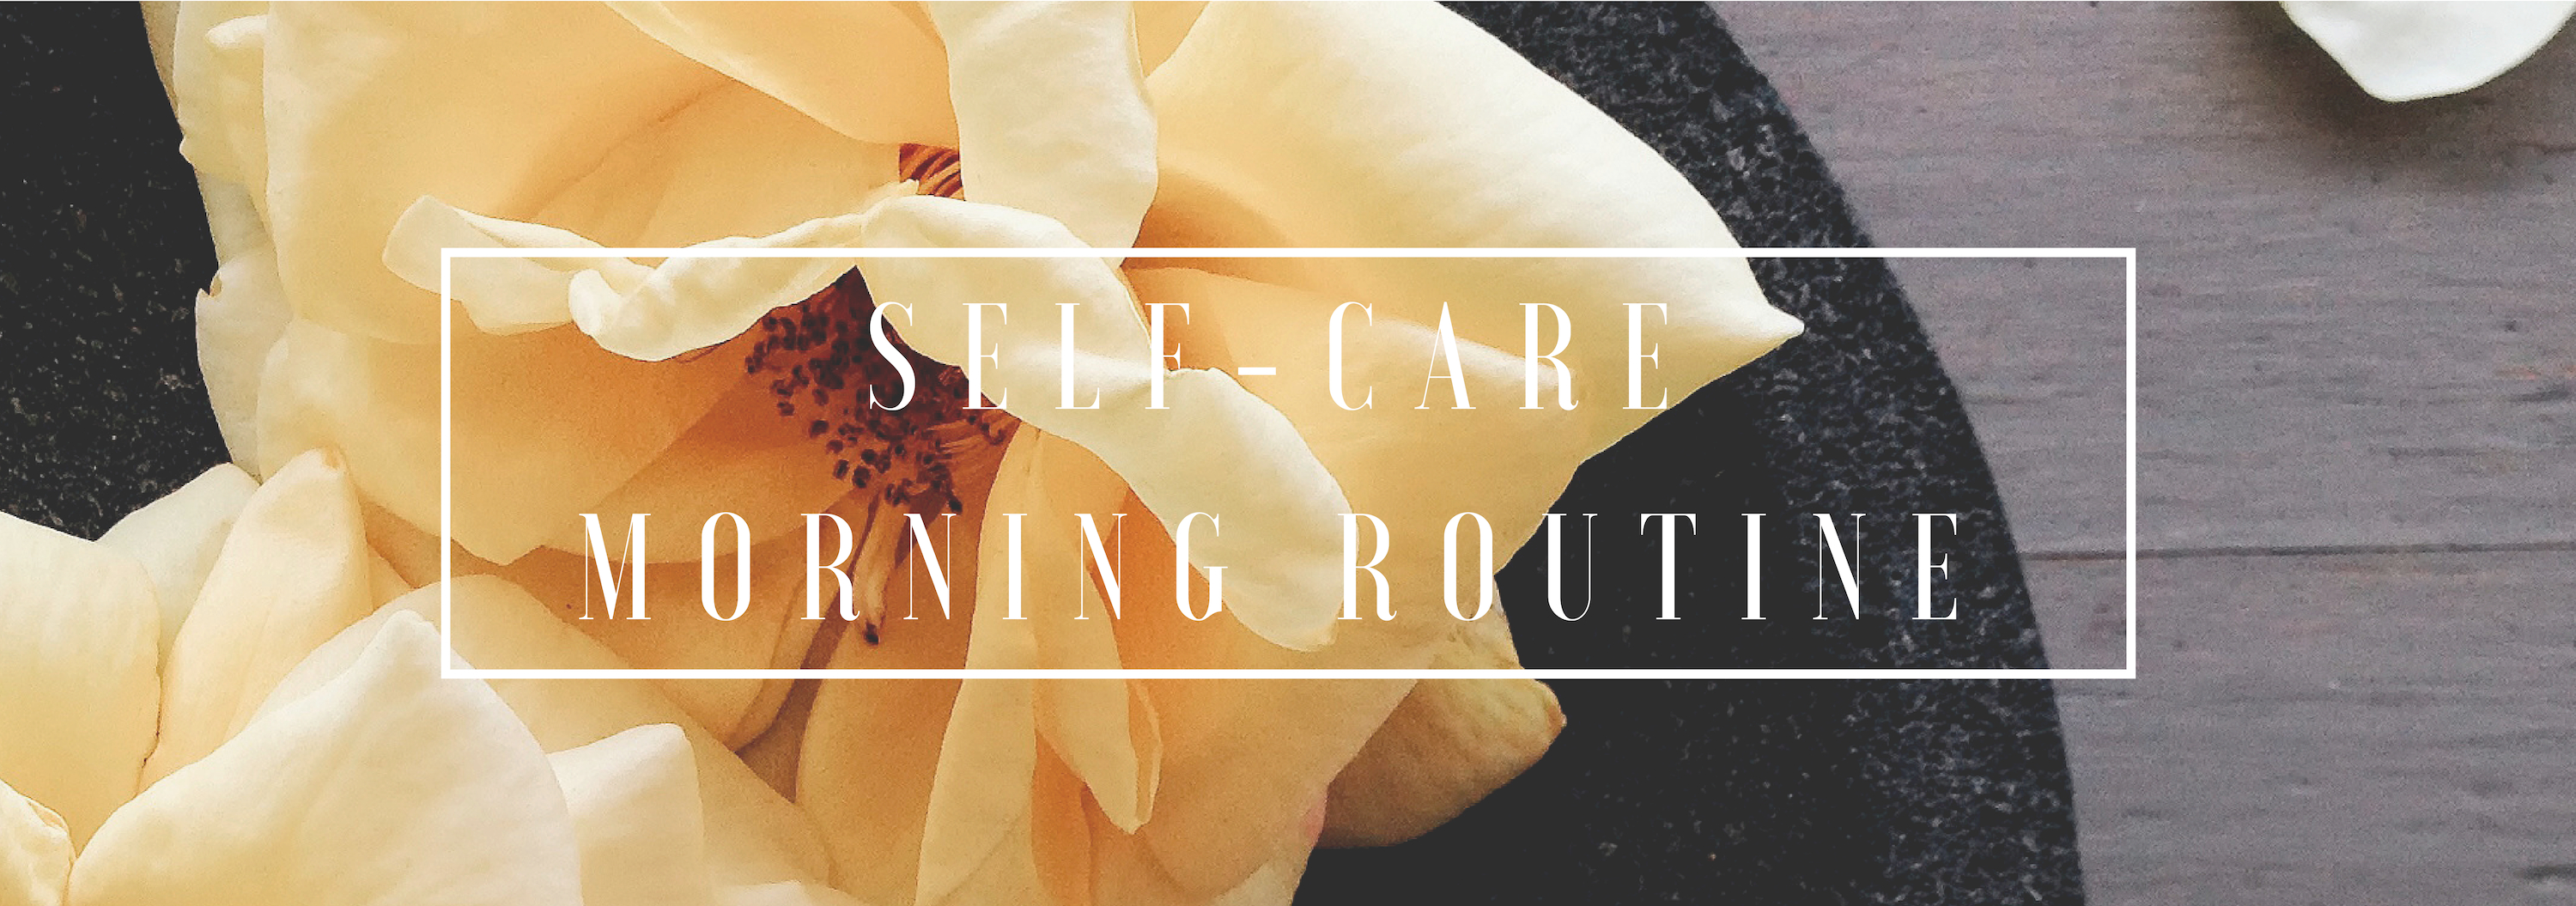 SELF-CARE MORNING ROUTINE